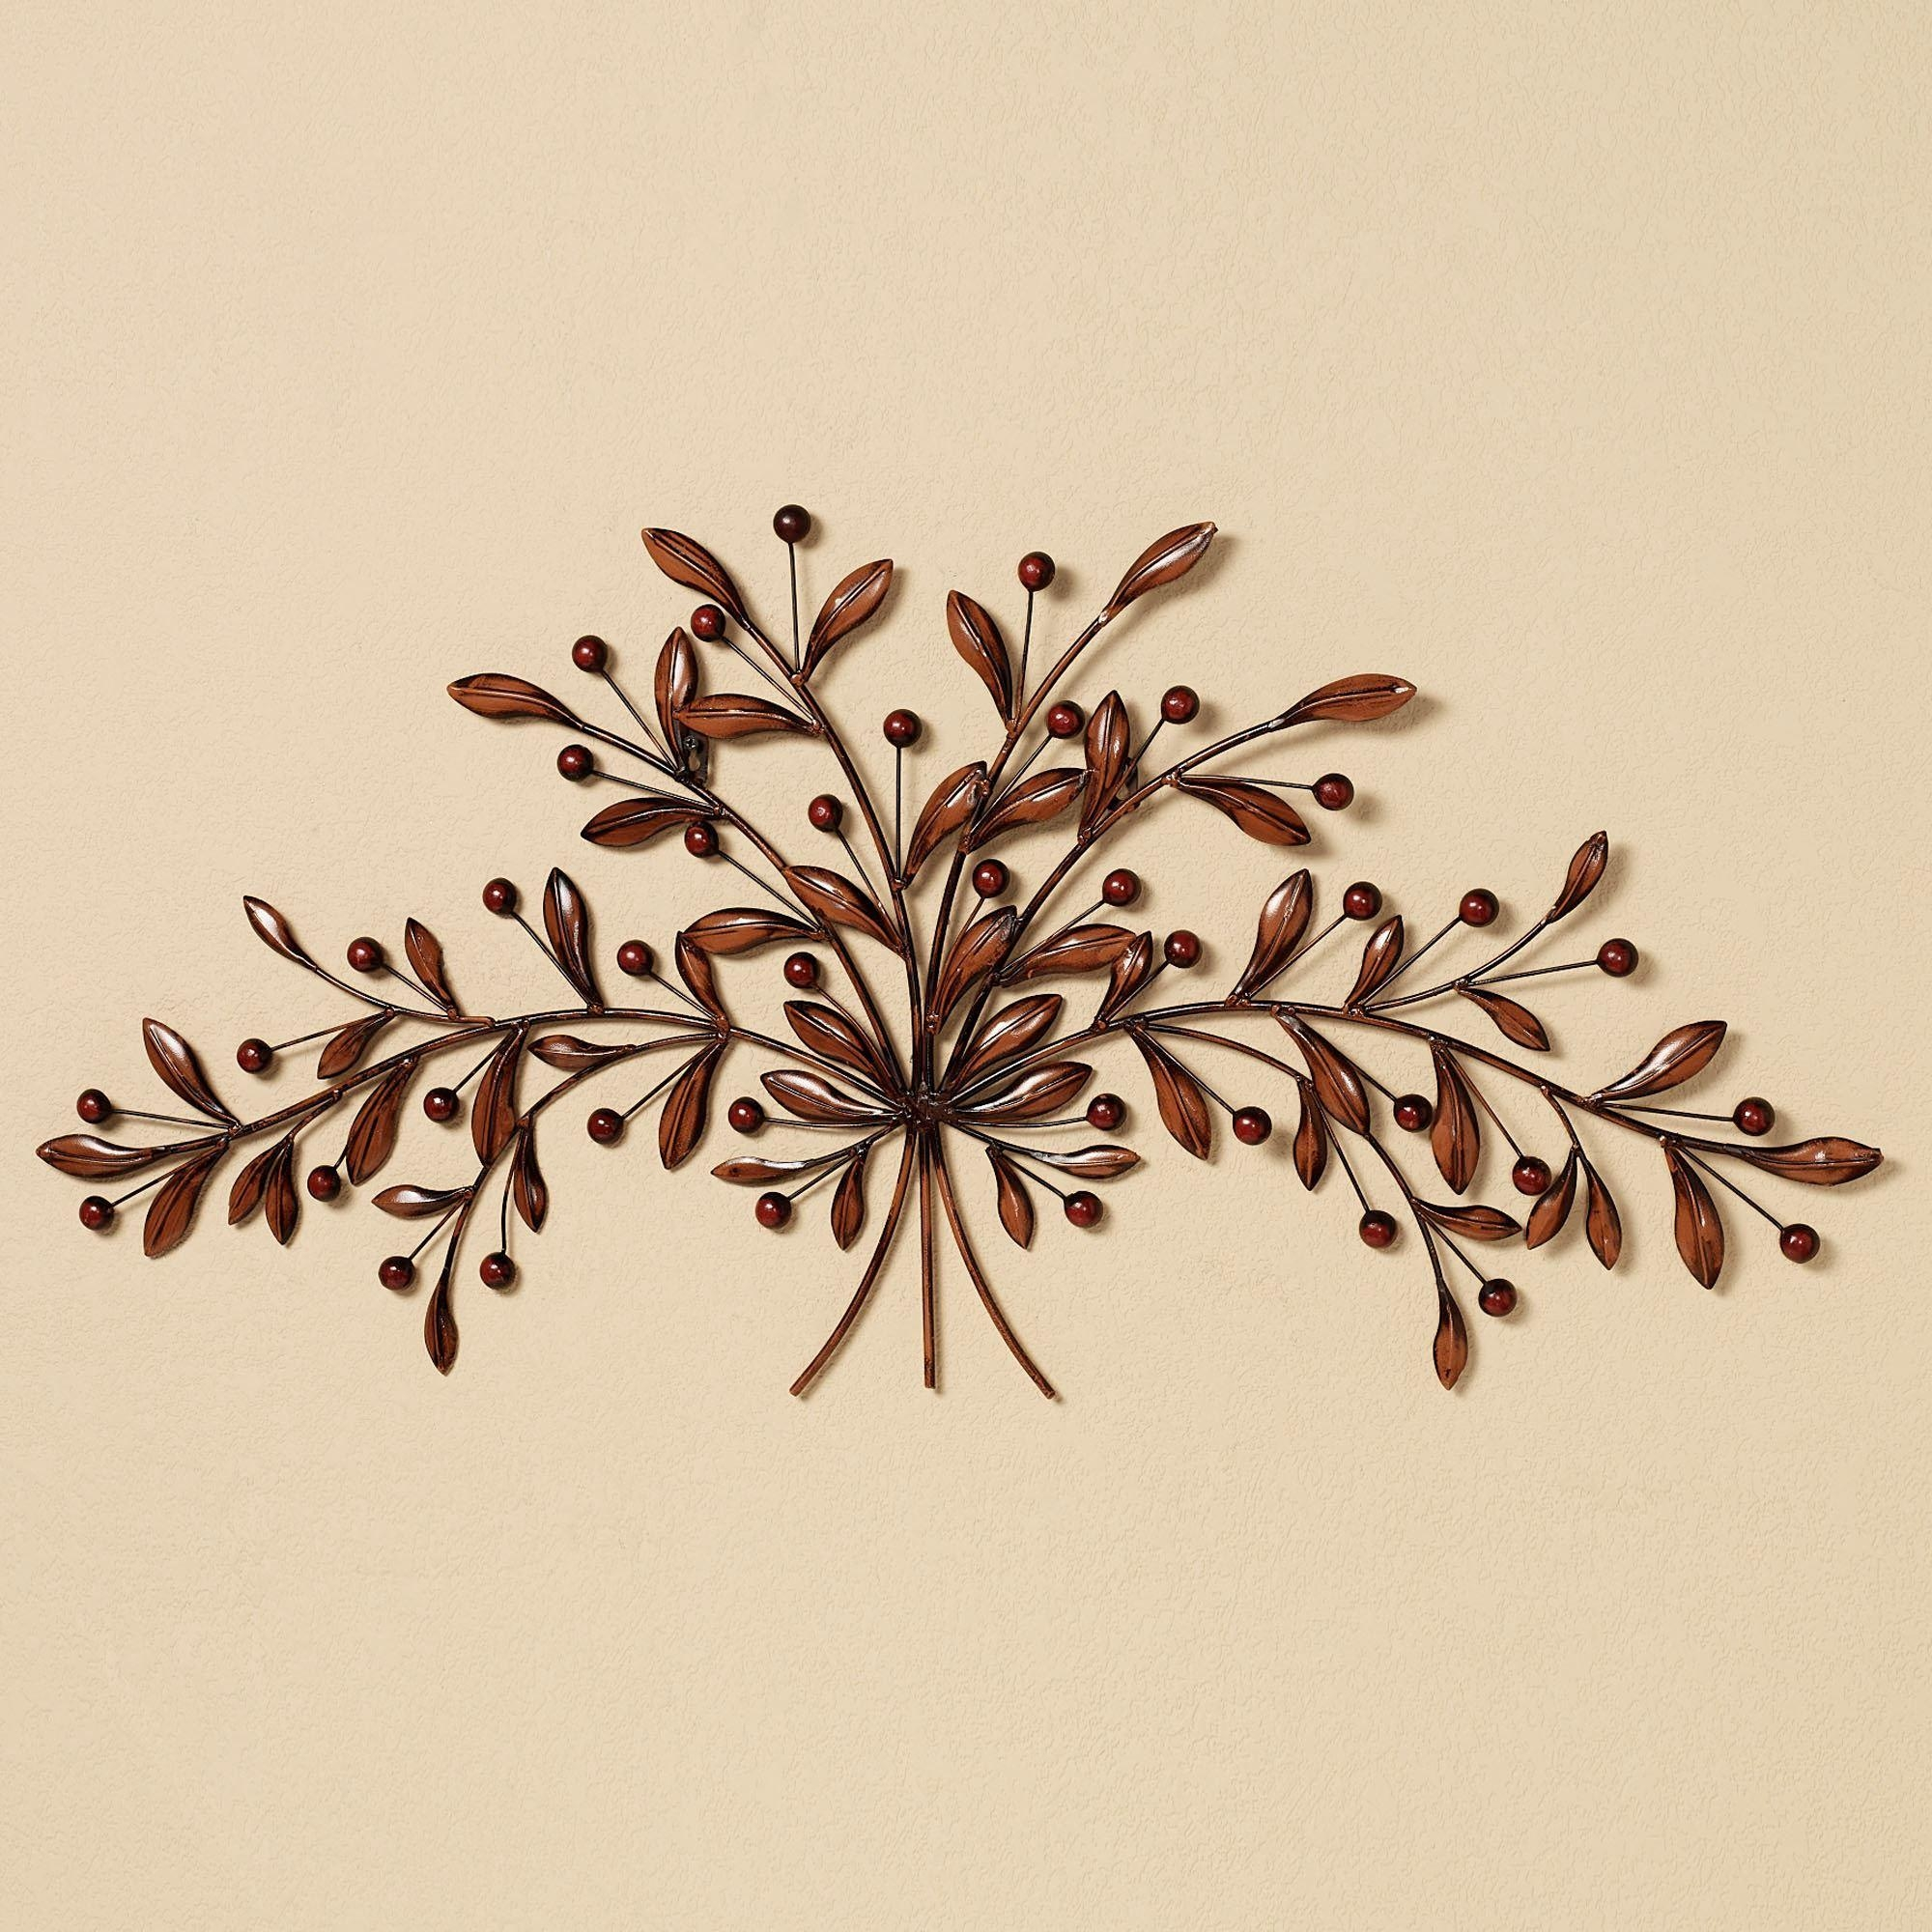 Cantabria Branch Metal Wall Art Spray Inside Metal Wall Art Trees And Branches (Image 6 of 20)